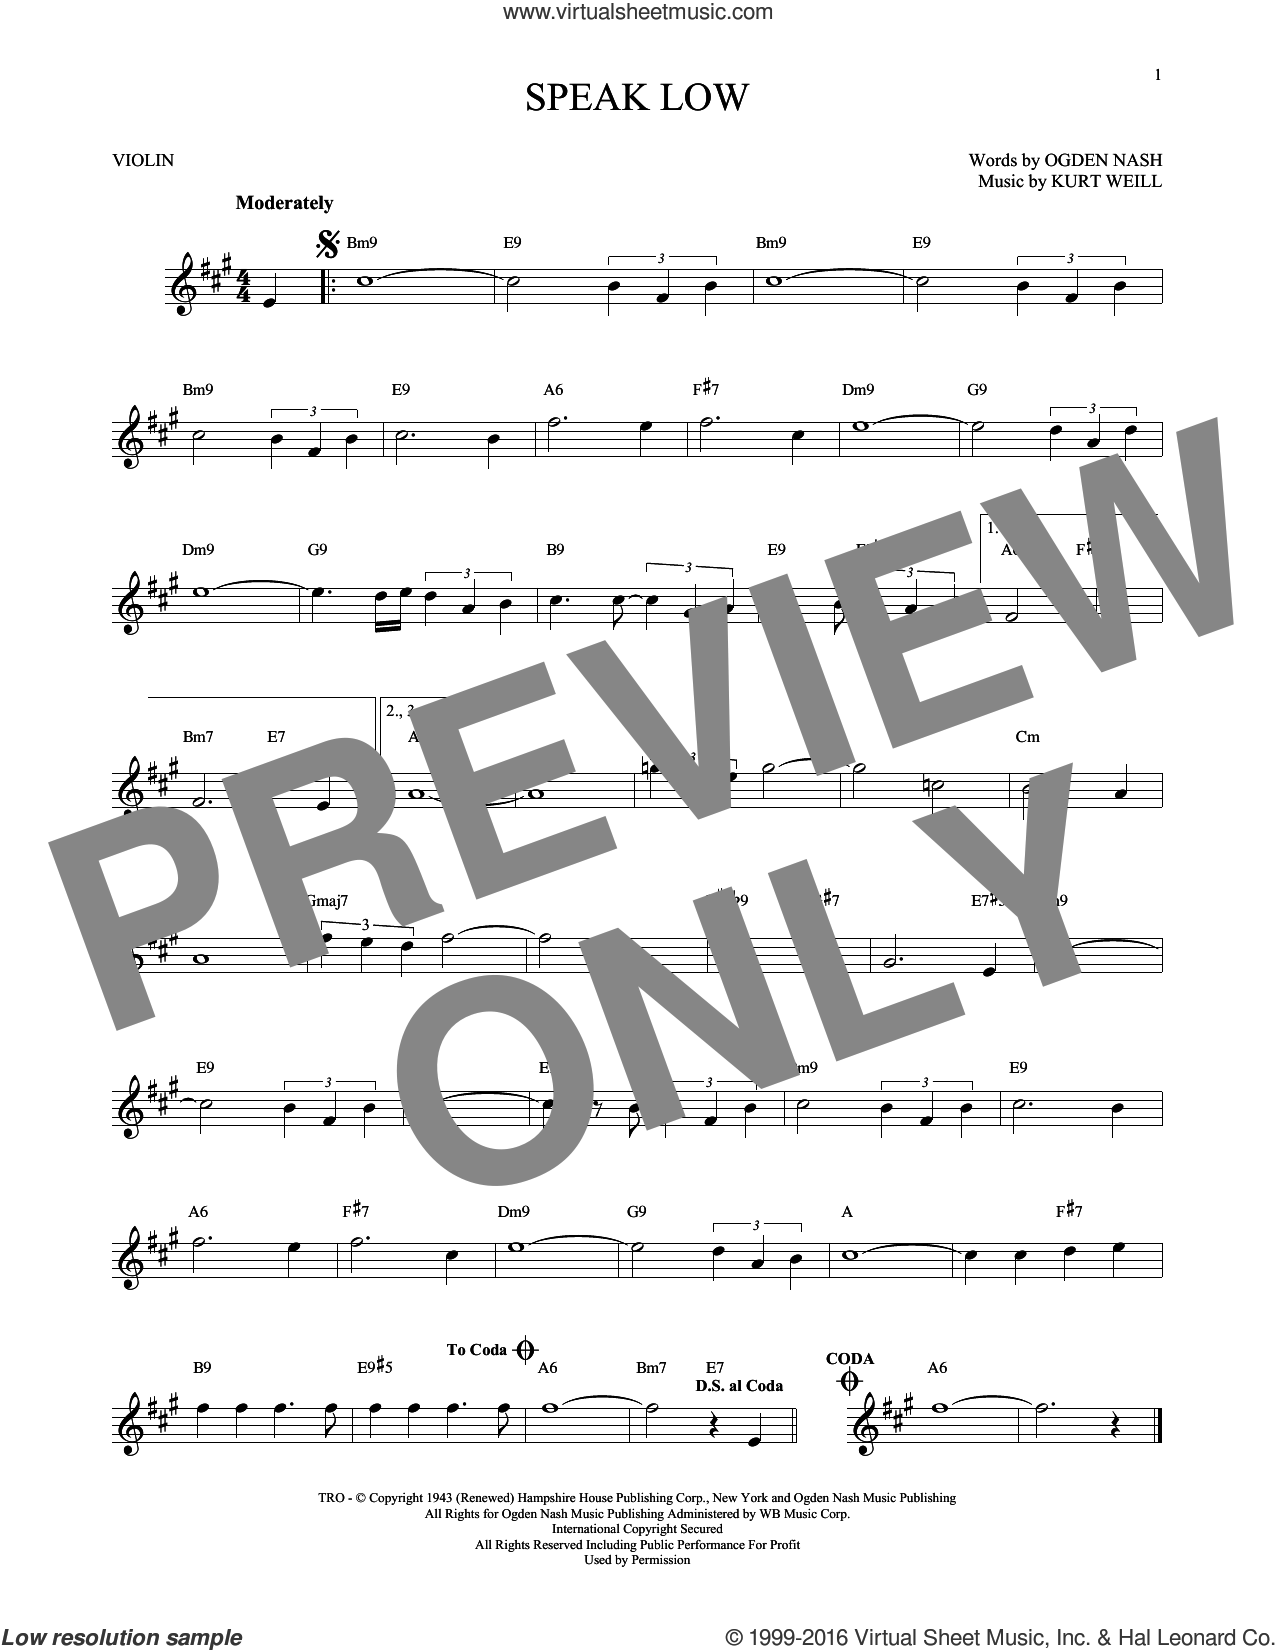 Speak Low sheet music for violin solo by Kurt Weill and Ogden Nash, intermediate skill level